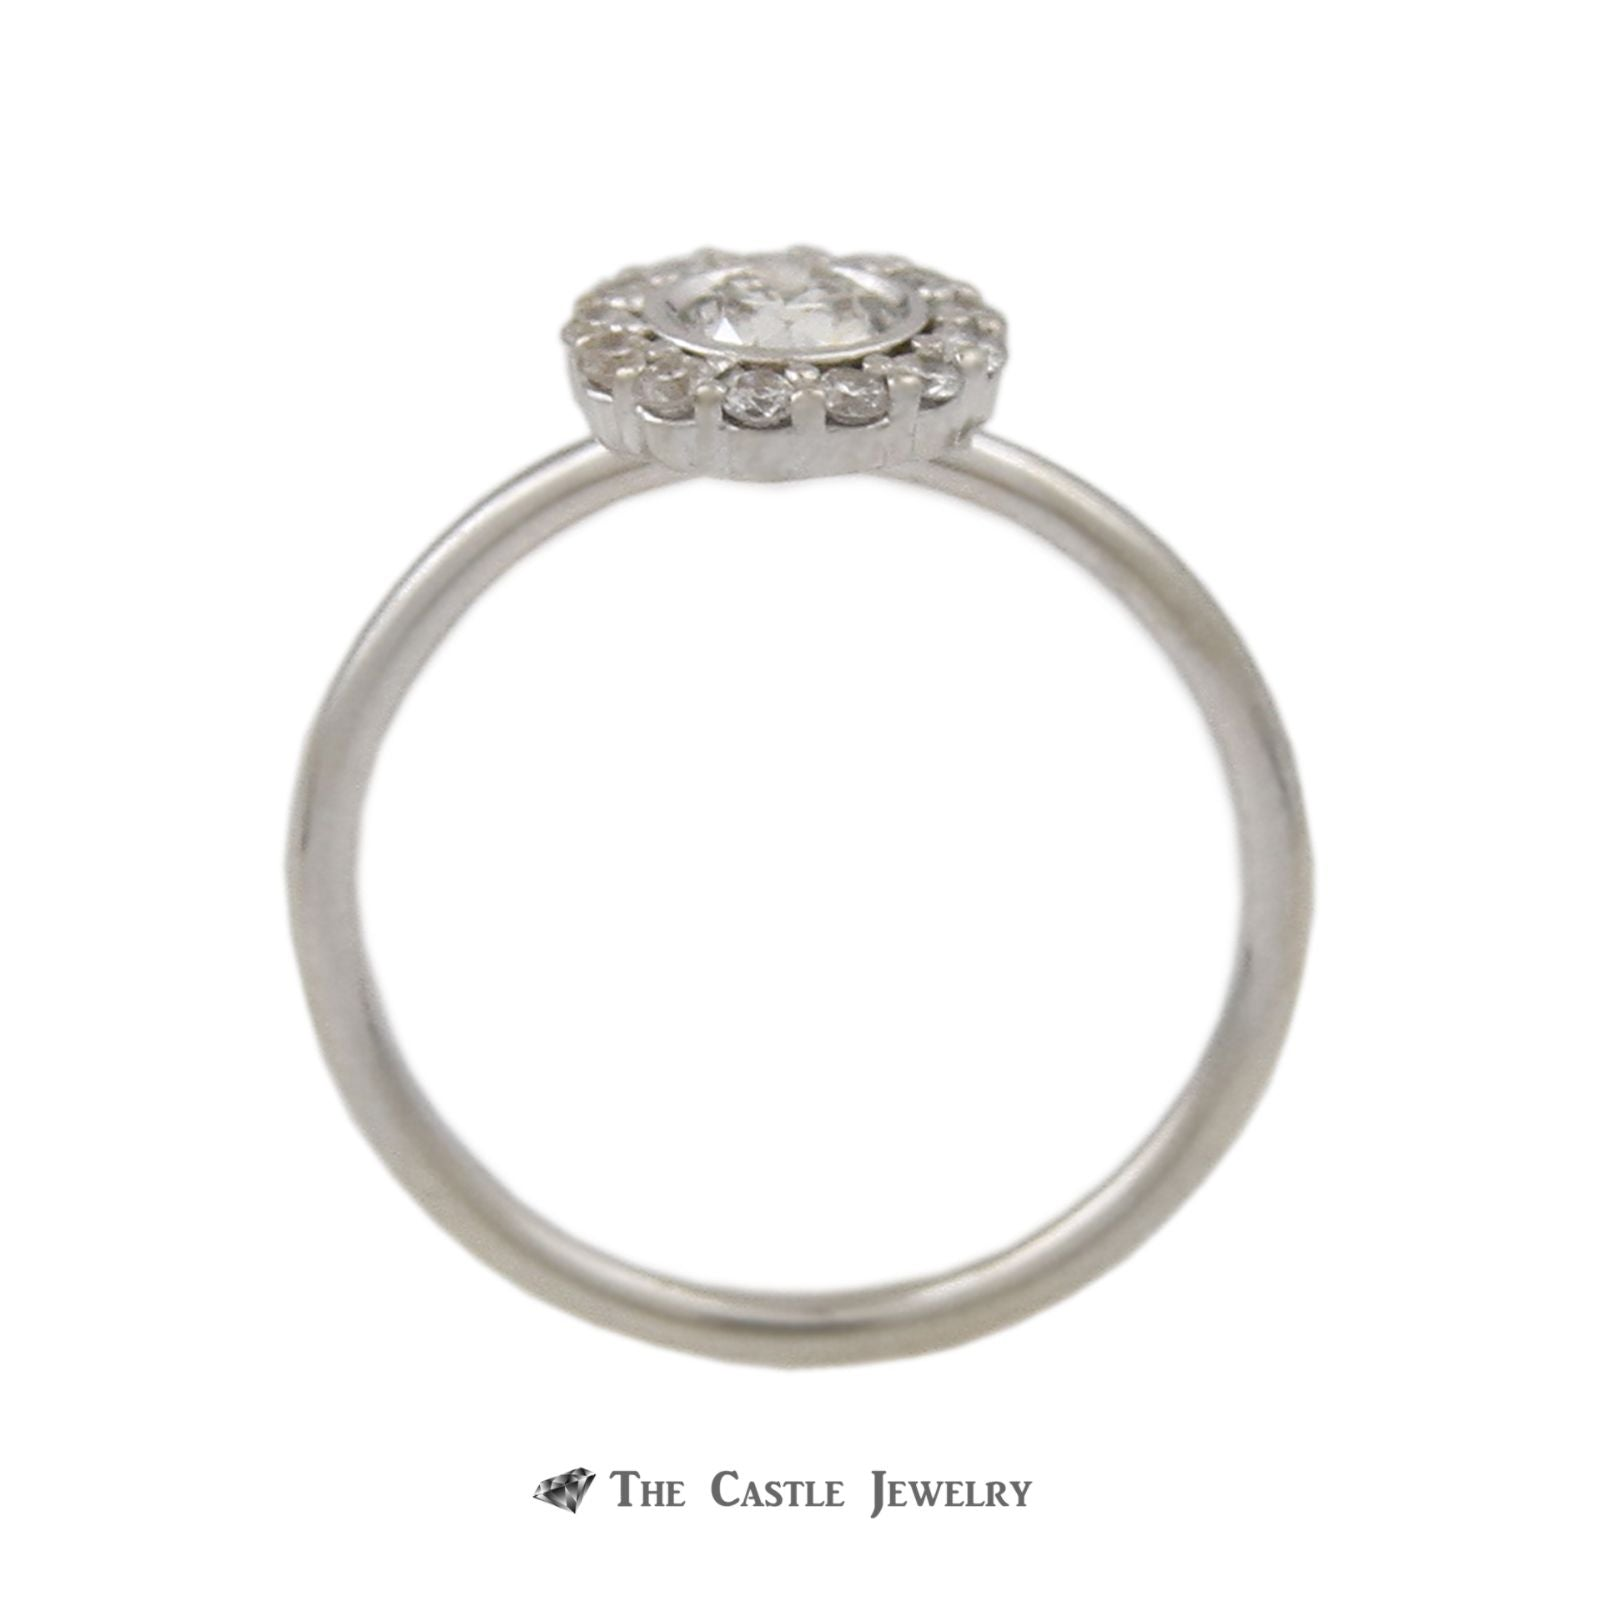 Bridal Set Round Bezel Set Diamond Center Round Diamond Halo 14K White Gold-1